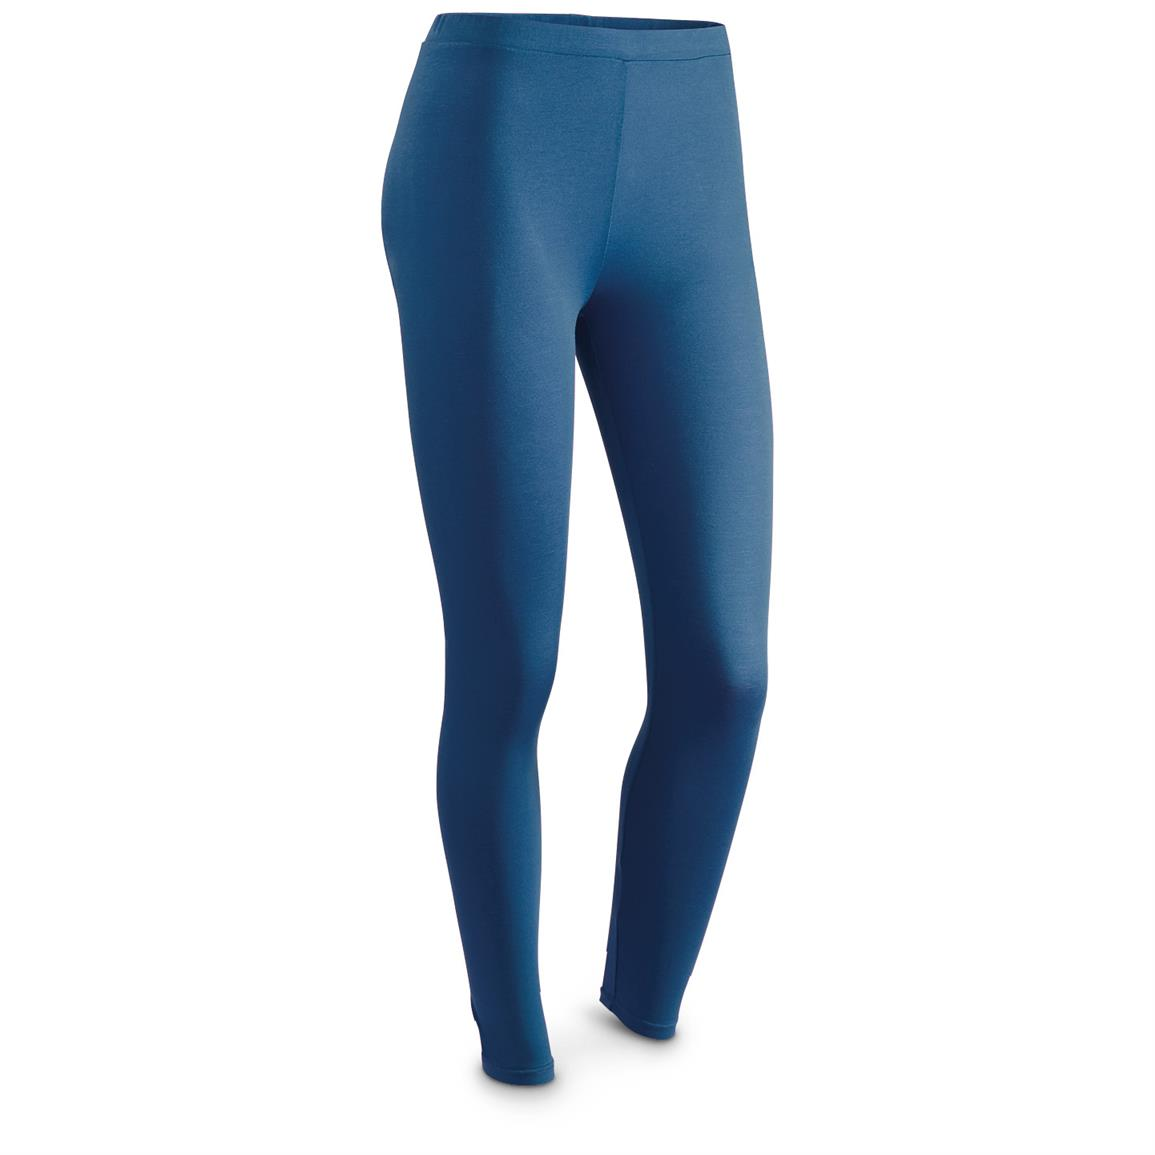 Weatherproof 32 Degrees HEAT Women's Base Layer Bottoms, Earthy Blue